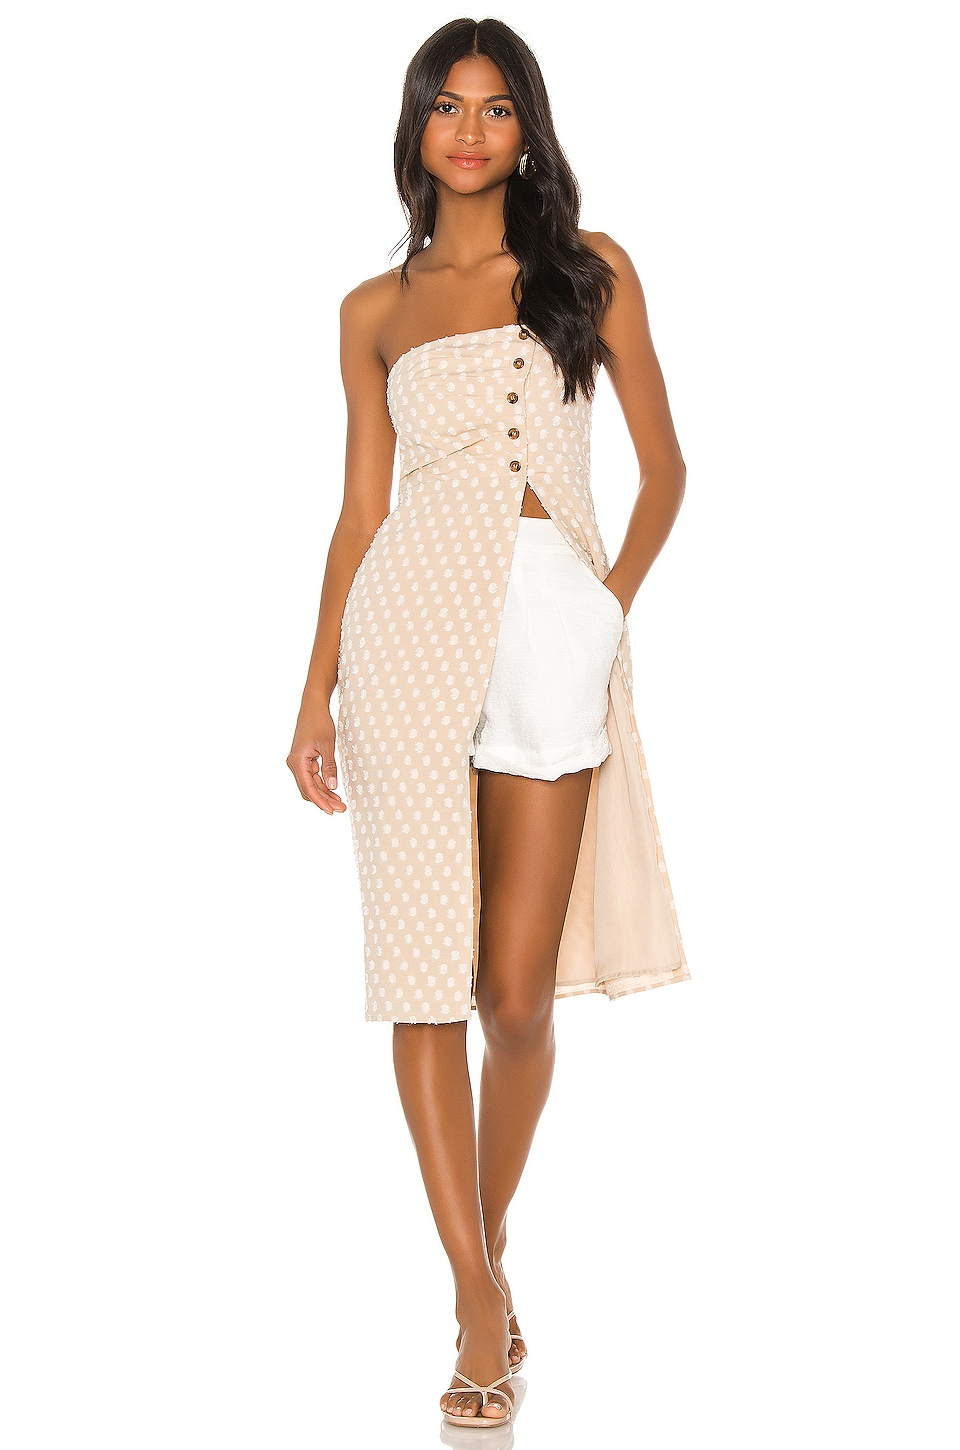 House of Harlow 1960 X REVOLVE Estela Top in Natural